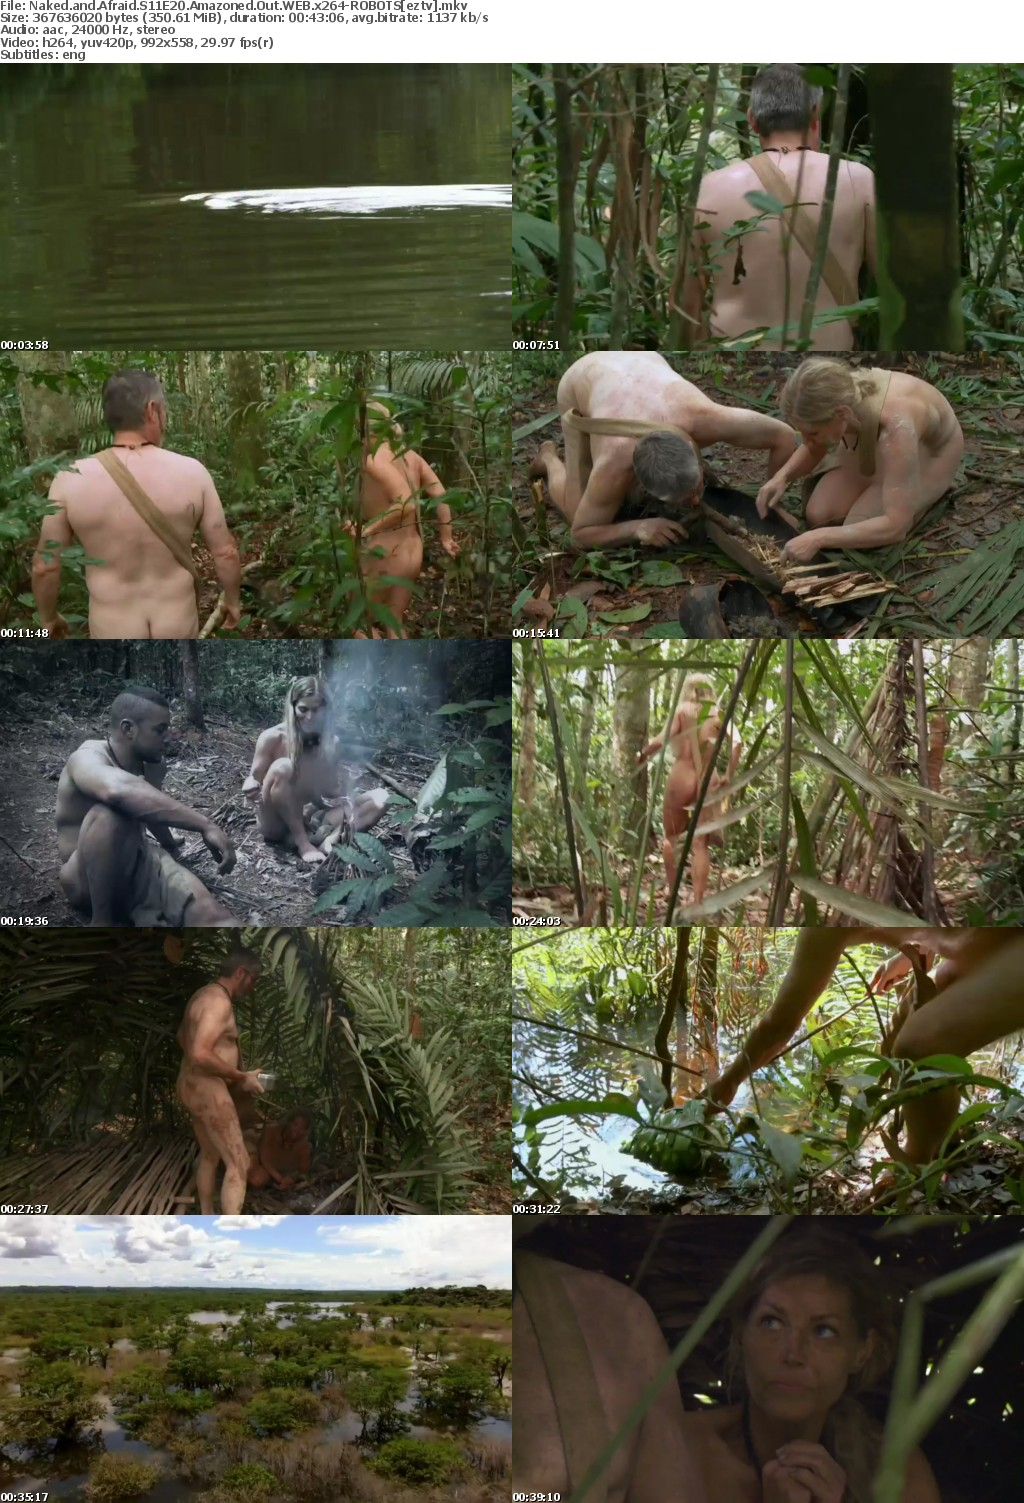 Naked and Afraid S11E20 Amazoned Out WEB x264-ROBOTS